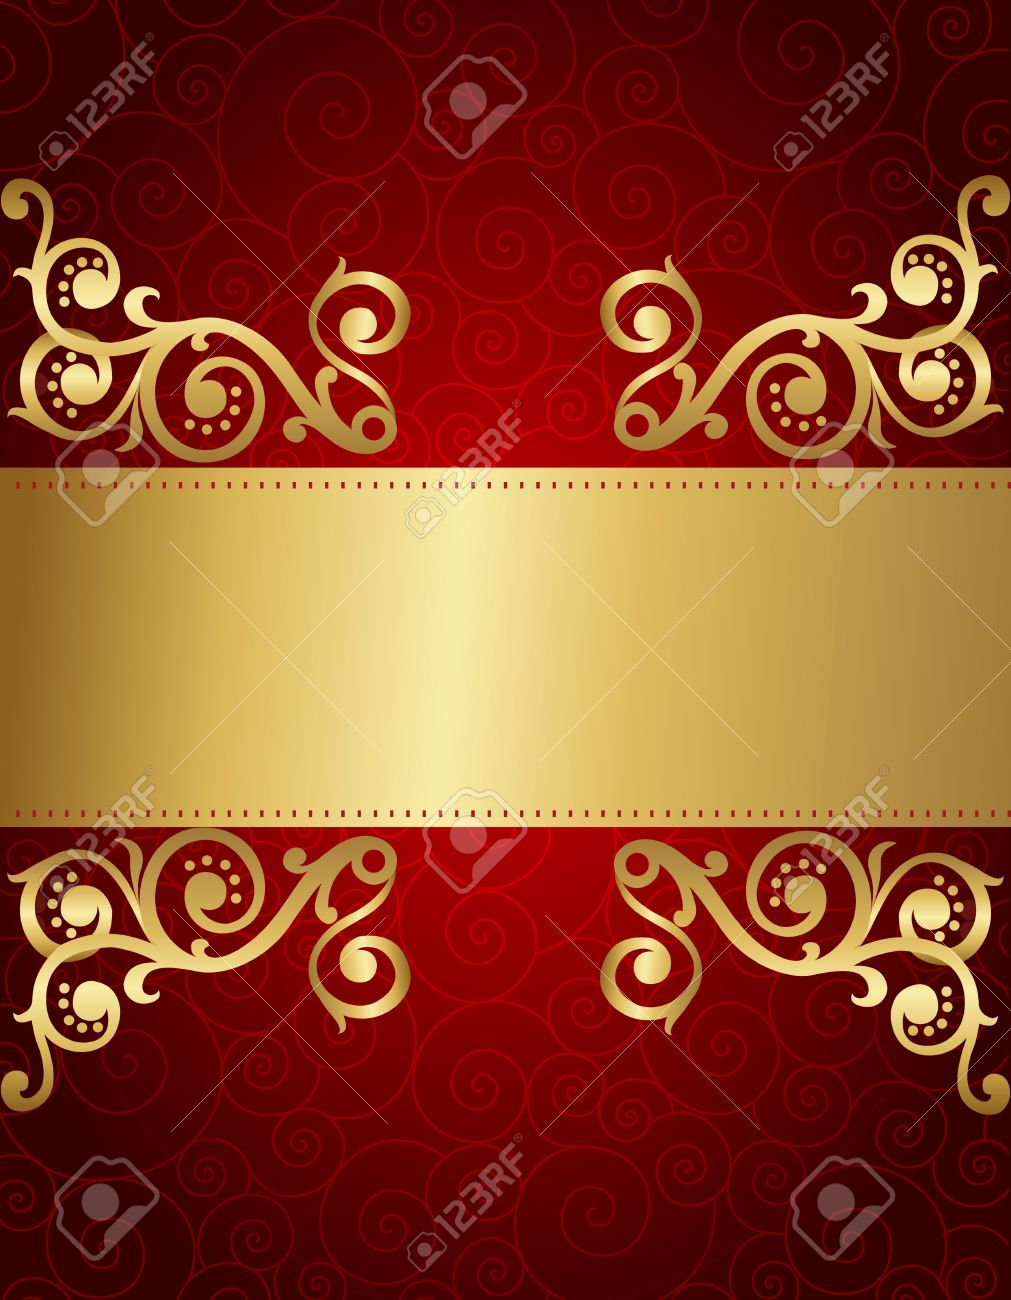 Elegant Red And Golden Decorative Background For Wedding / Party ...